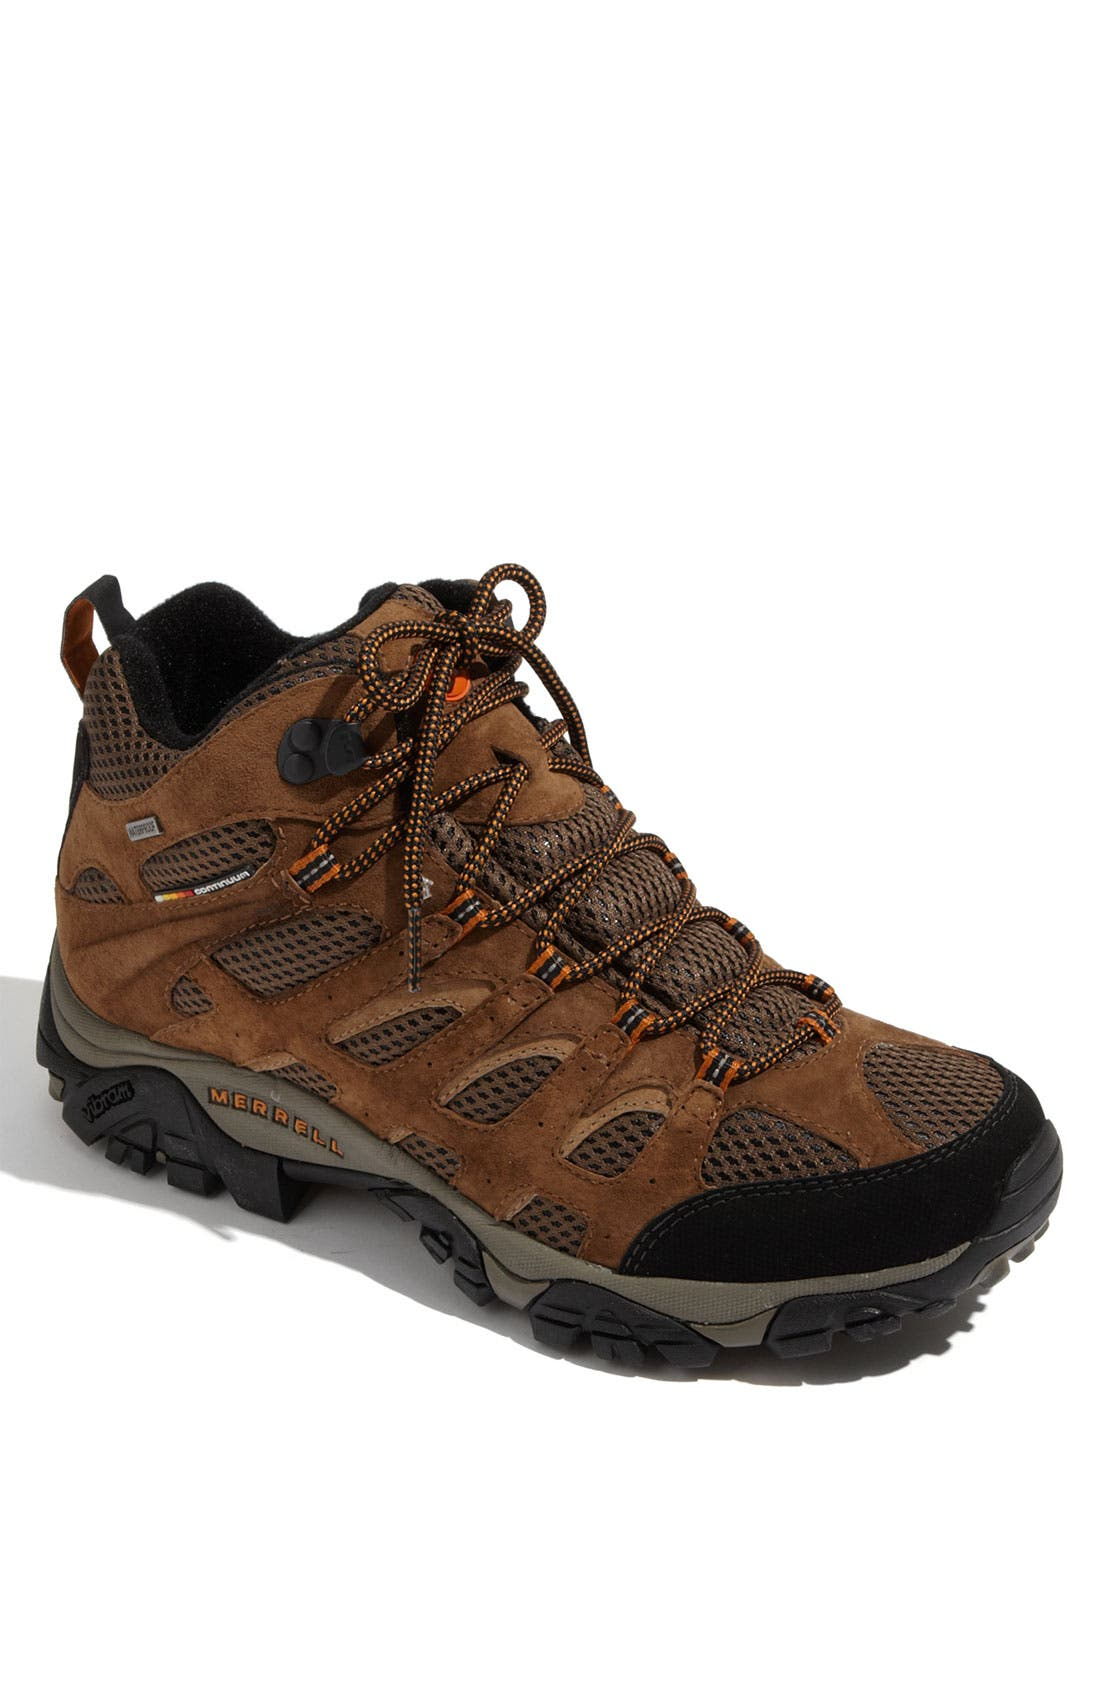 Alternate Image 1 Selected - Merrell 'Moab Mid' Waterproof Hiking Boot (Men)